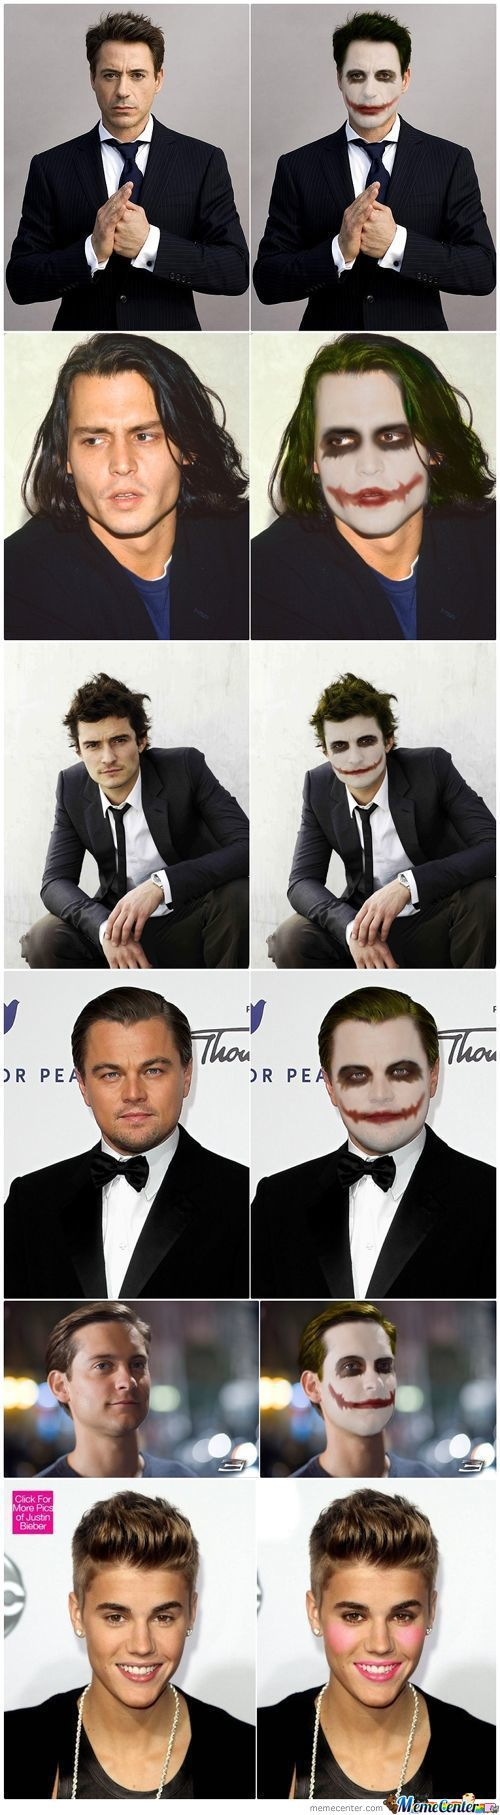 It's About Joker!!